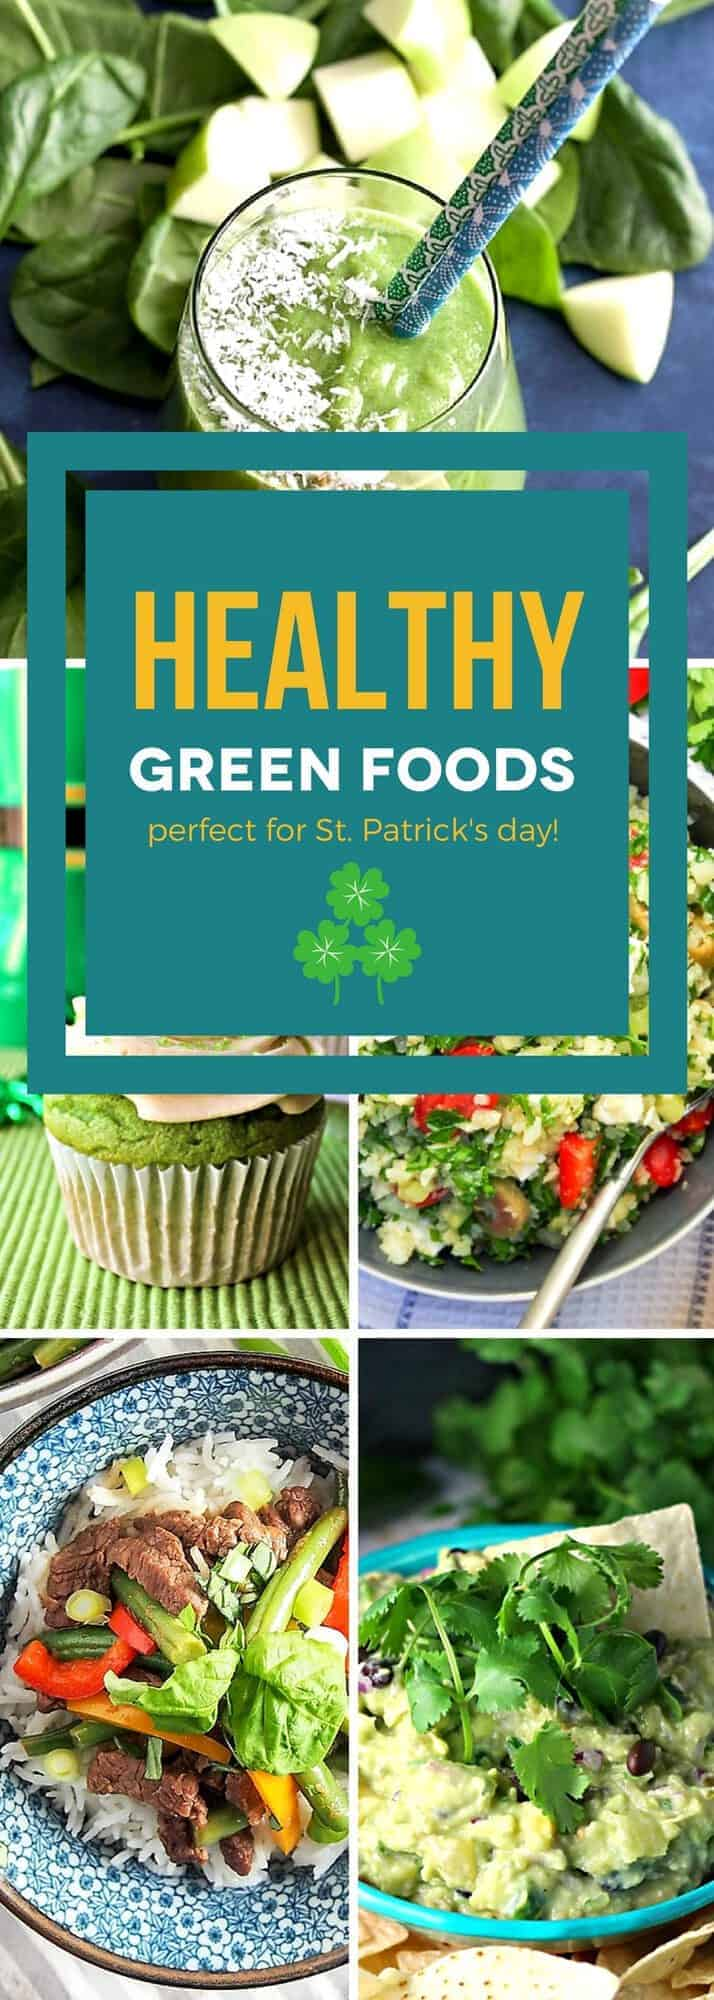 This collection of healthy green foods has it all, from healthy breakfast recipes to desserts so tasty that you'll forget they're good for you! Each one of these health-conscious recipes is packed with good-for-you greens and lots of flavor. These delicious healthy recipes are perfectly festive for St. Patrick's Day! #SundaySupper #greenrecipes #healthyrecipes #healthyitup #healthyeating